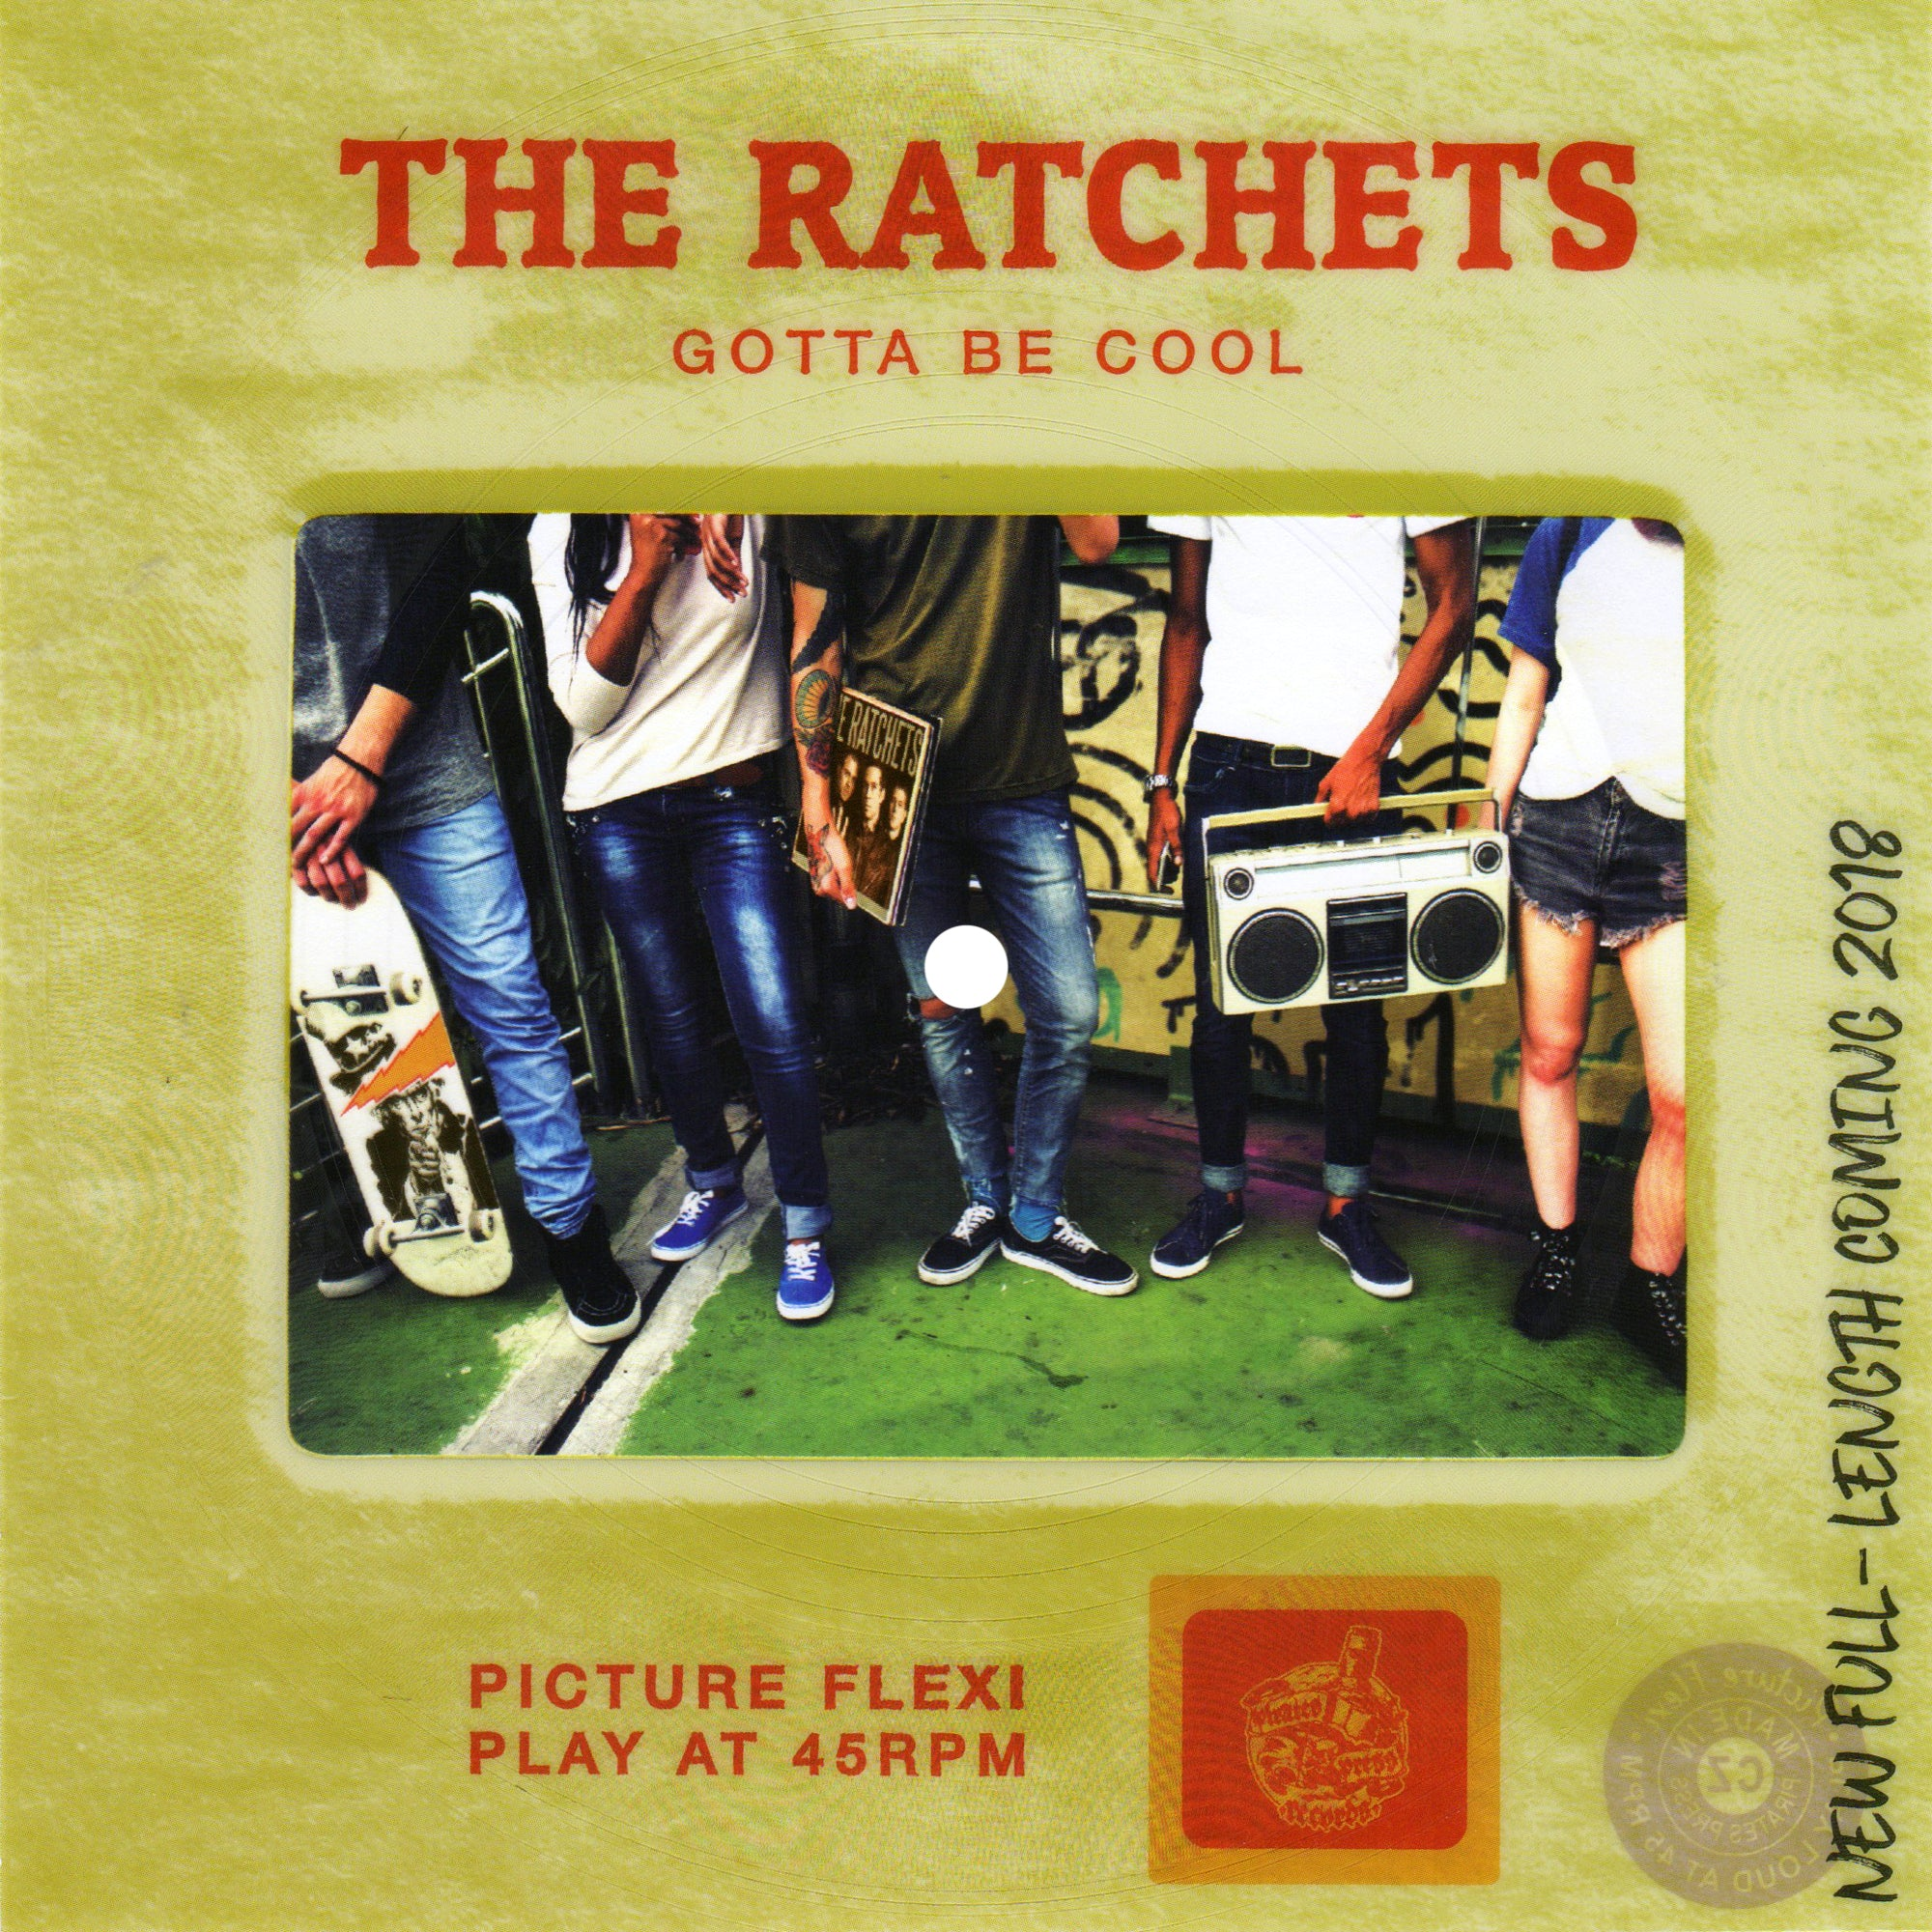 The Ratchets - Gotta Be Cool Slide Flexi